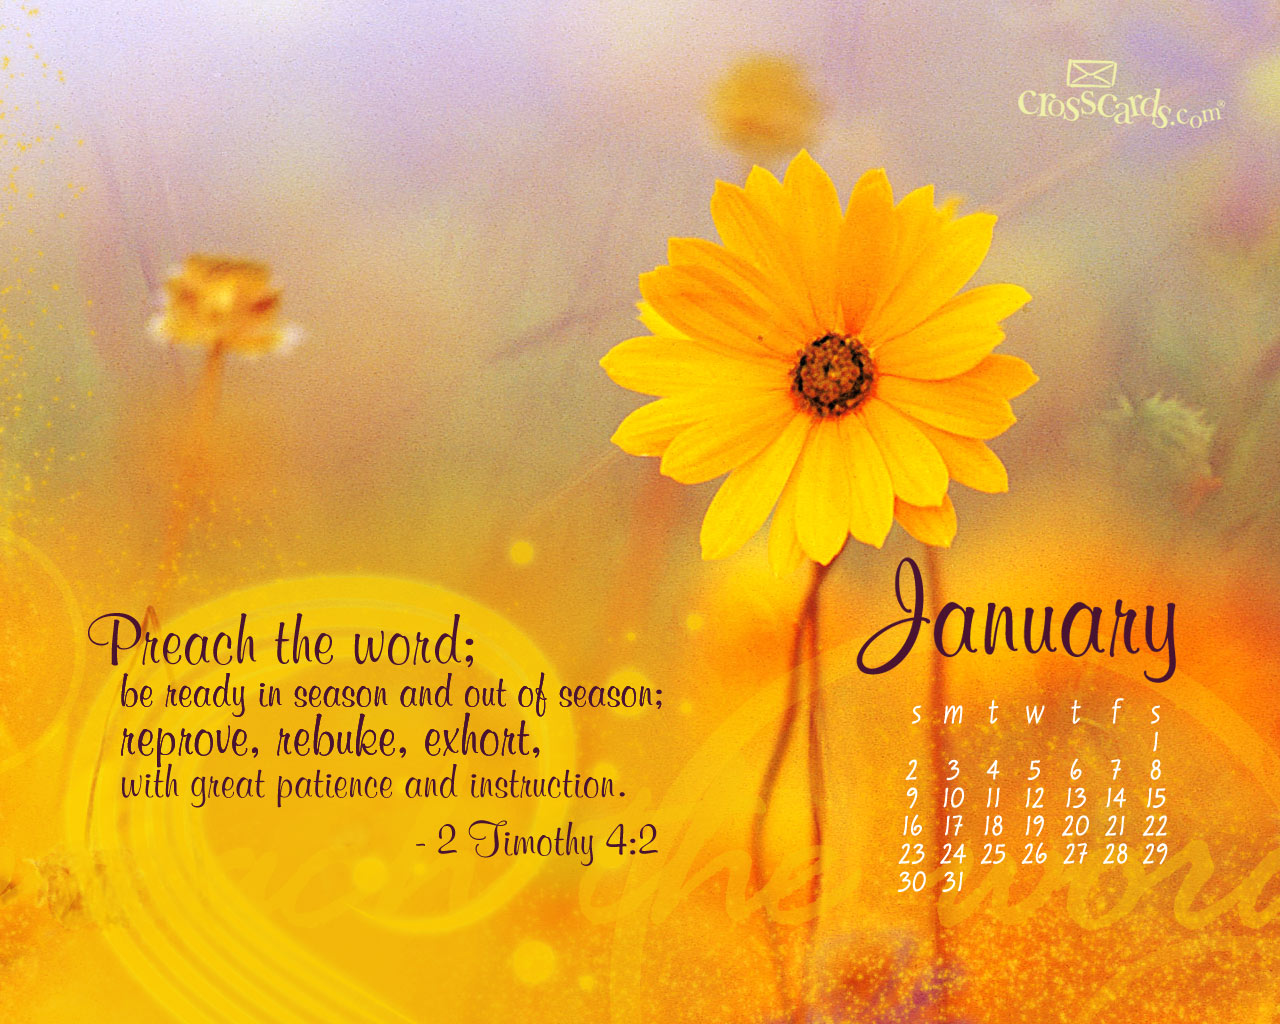 2015 wallpapers crosscards wallpaper monthly calendars 2015 crosscards 1280x1024